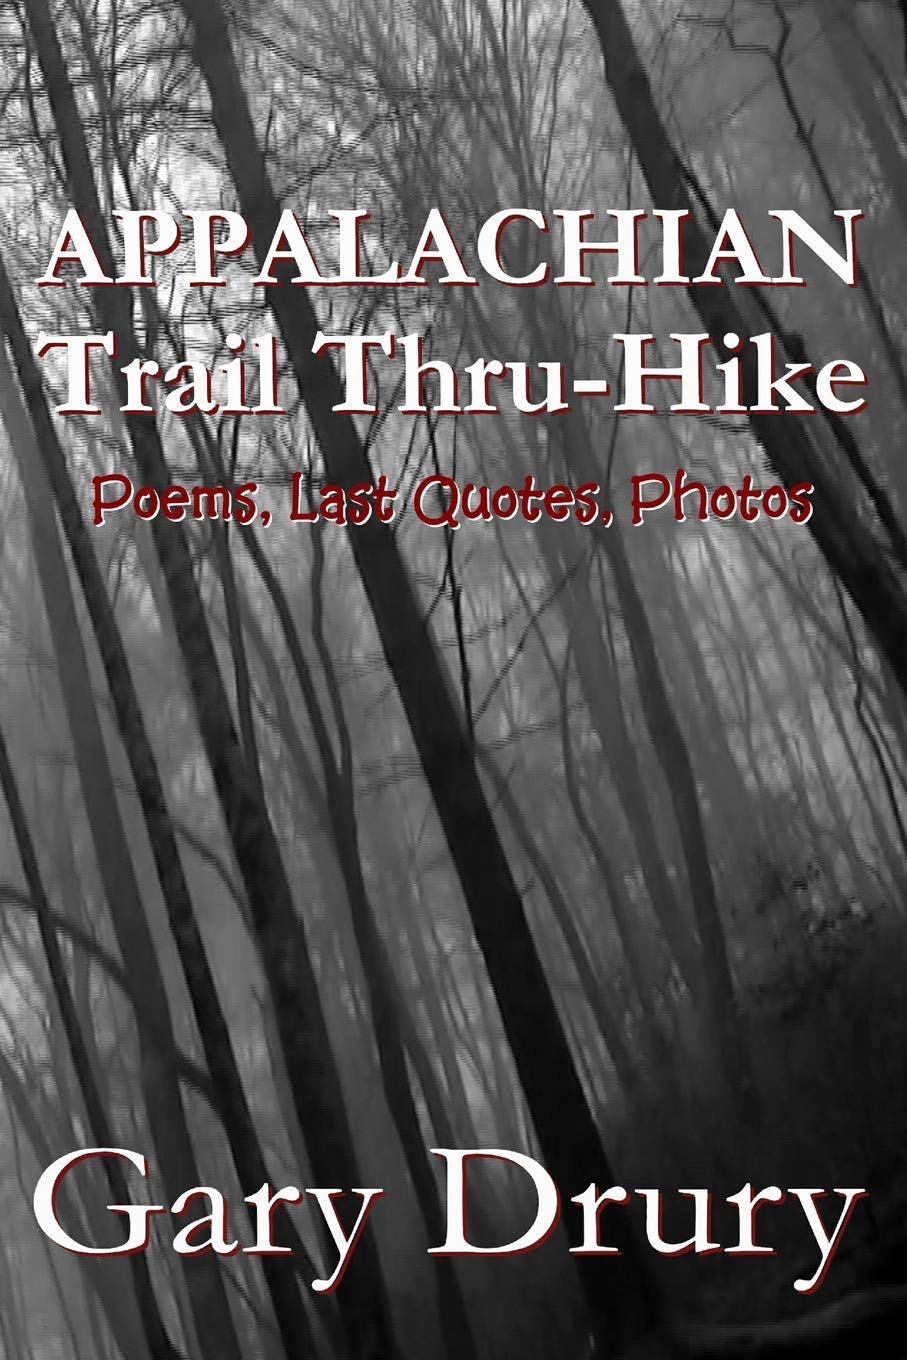 Appalachian Trail Thru-Hike: Poems, Last Quotes, Photos: Gary Drury